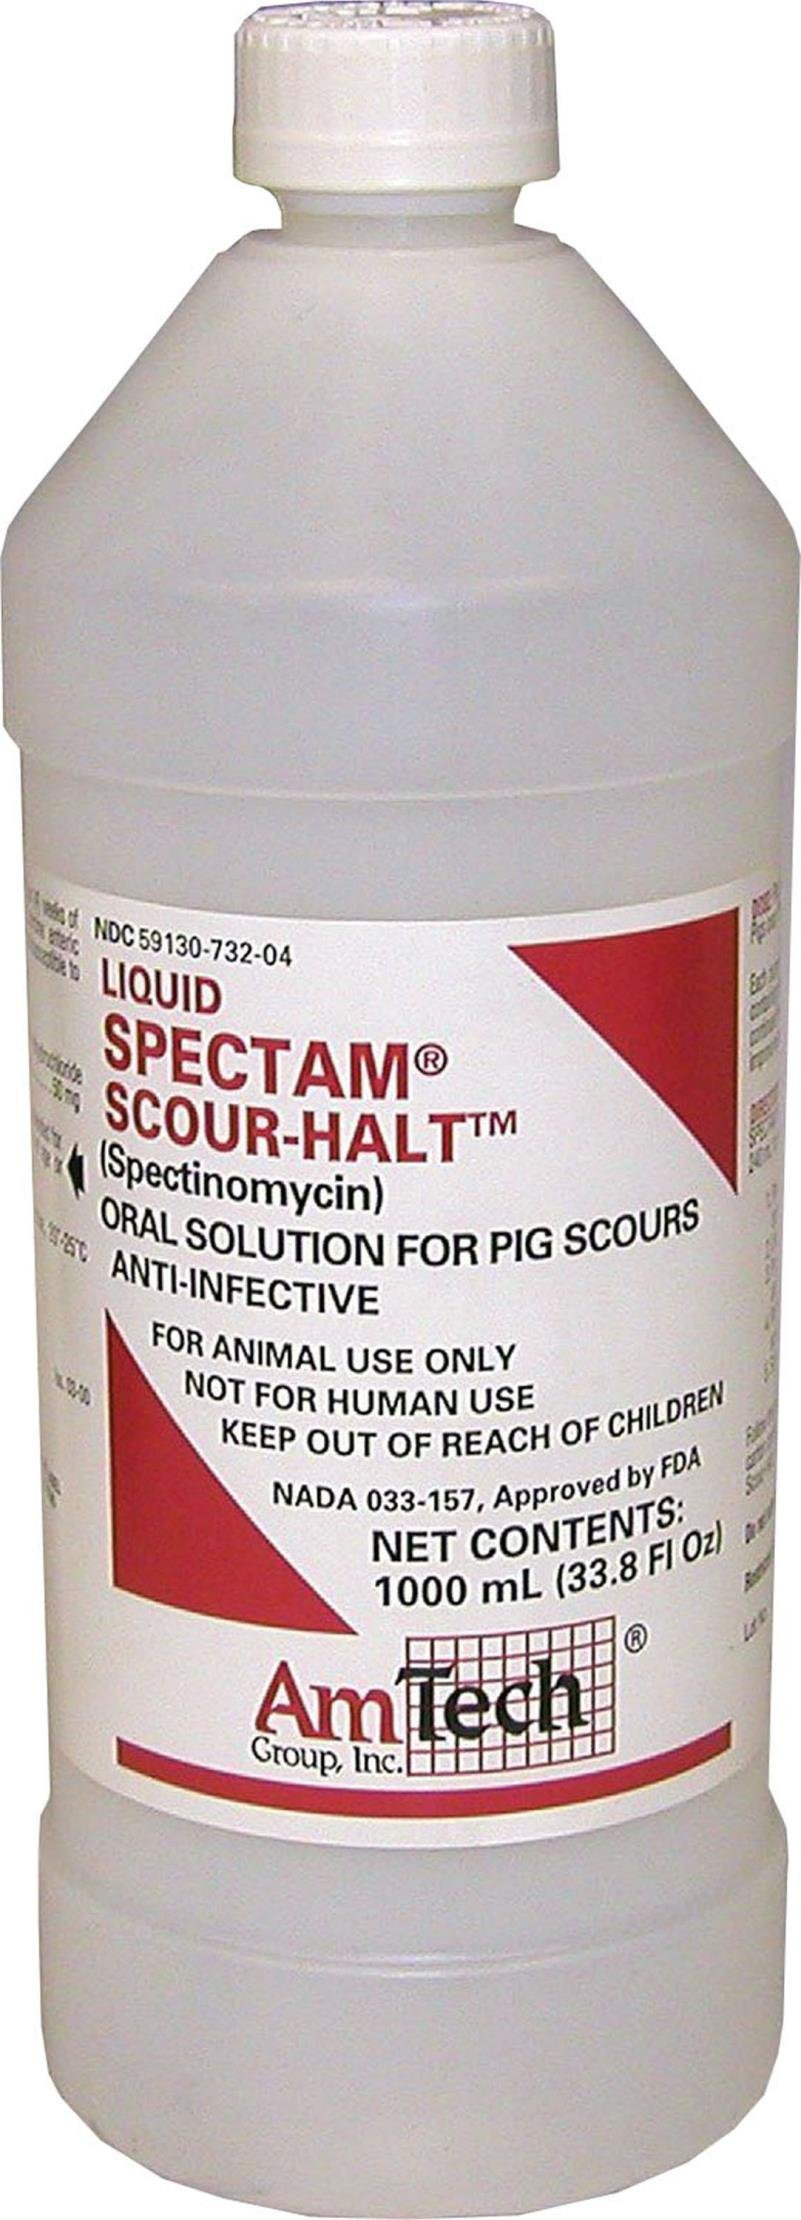 SPECTO-GARD SCOUR CHECK FOR PIGS - 1000 MILLILITER